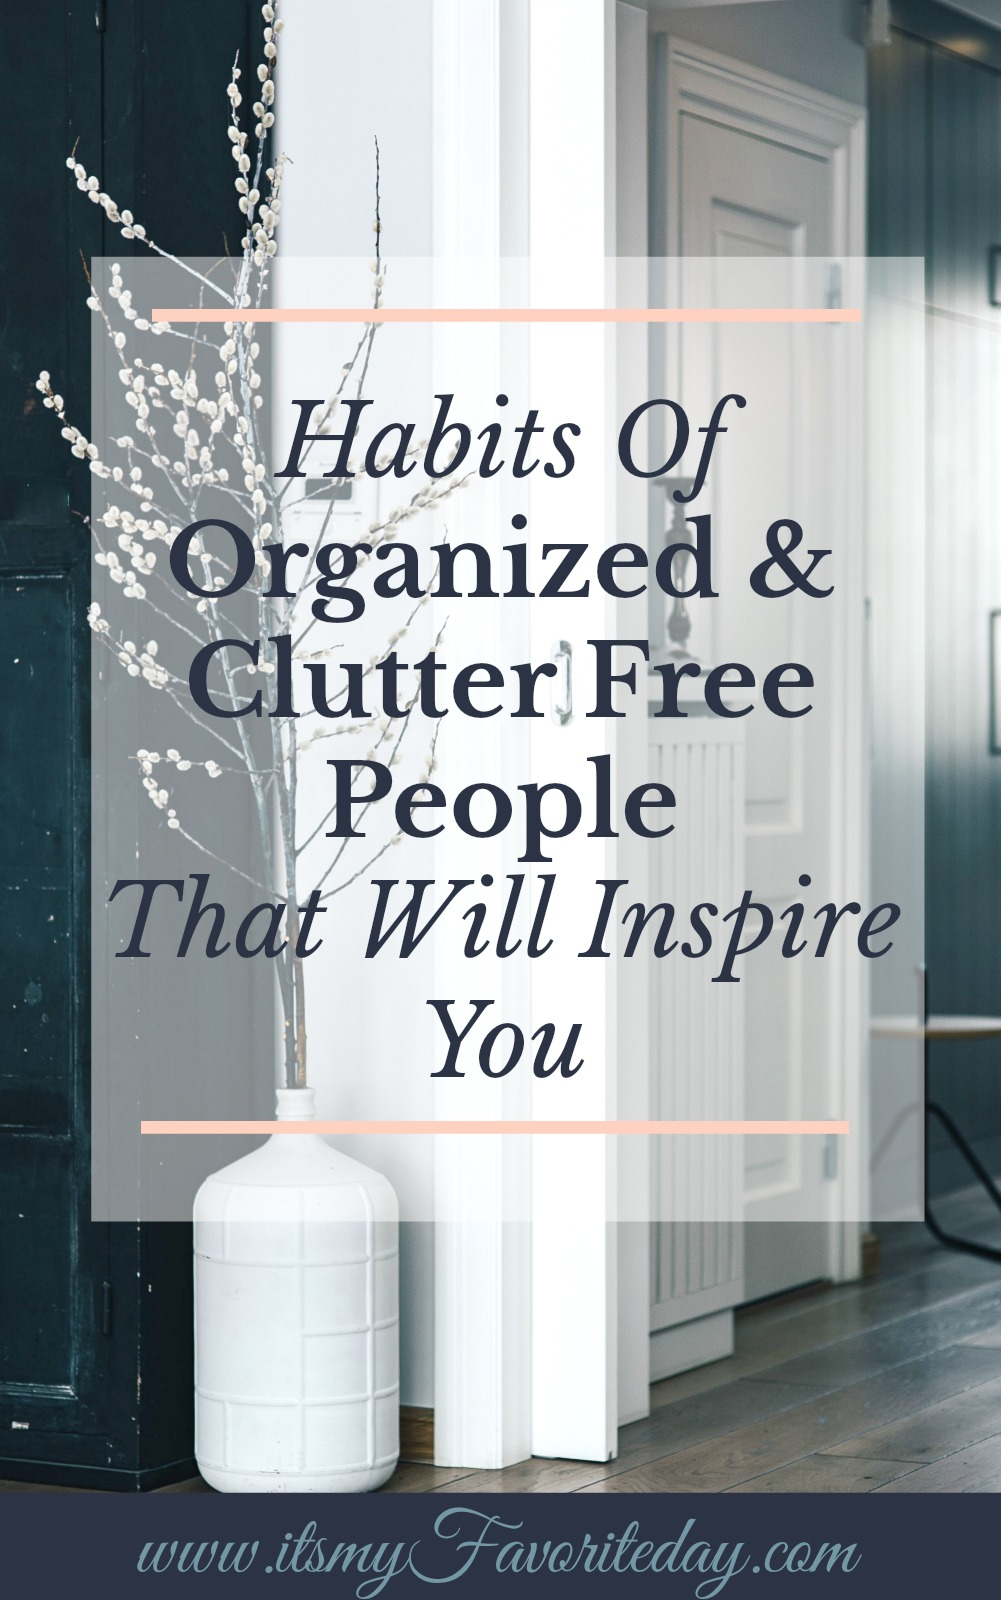 The habits of organized clutter free people can not only teach us how to have an organized and clutter-free home, but they can inspire us to pursue those habits!